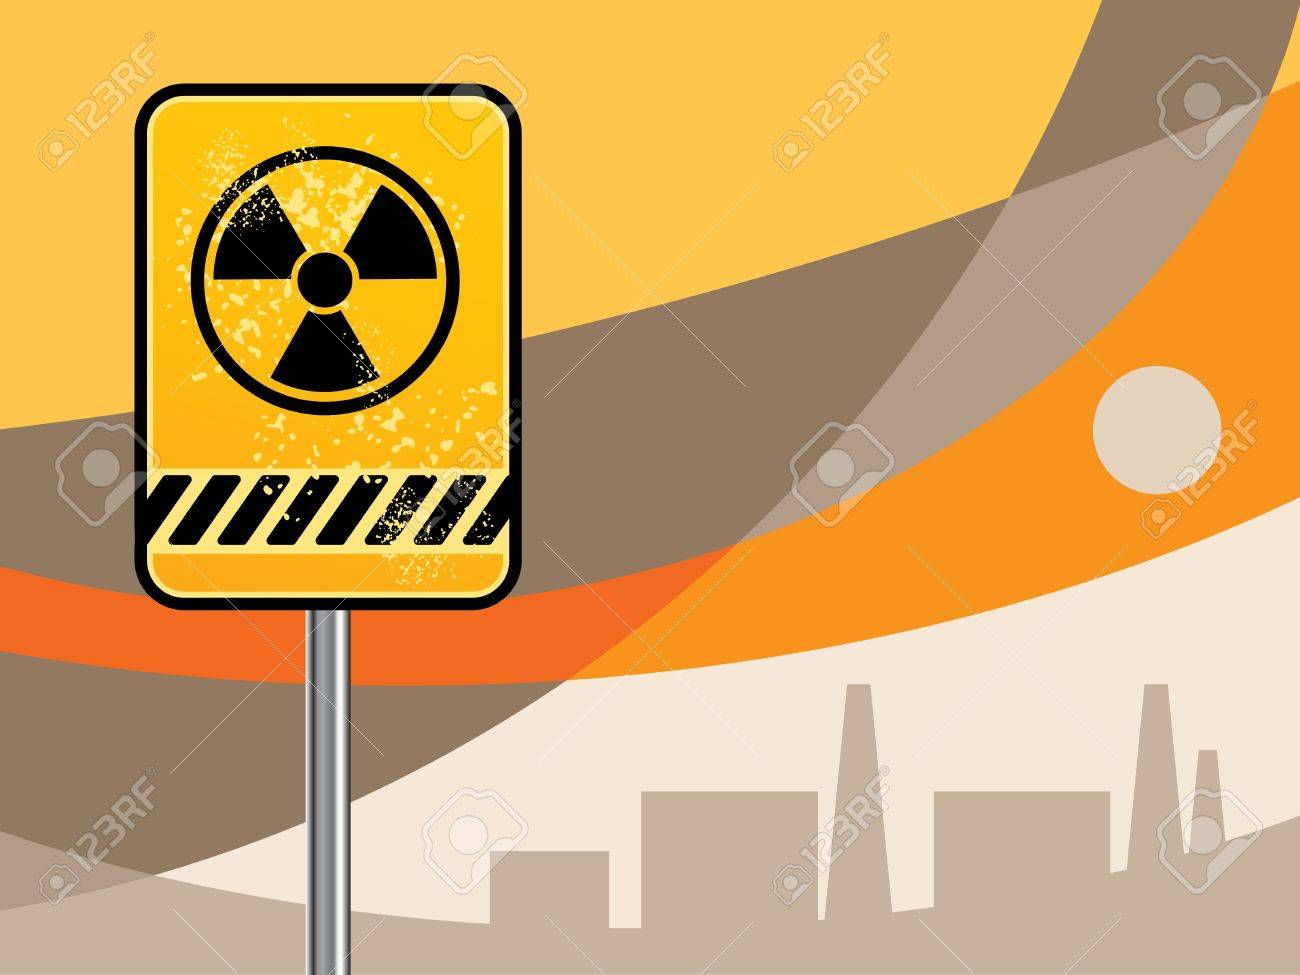 Nuclear danger warning background Stock Vector - 14513587